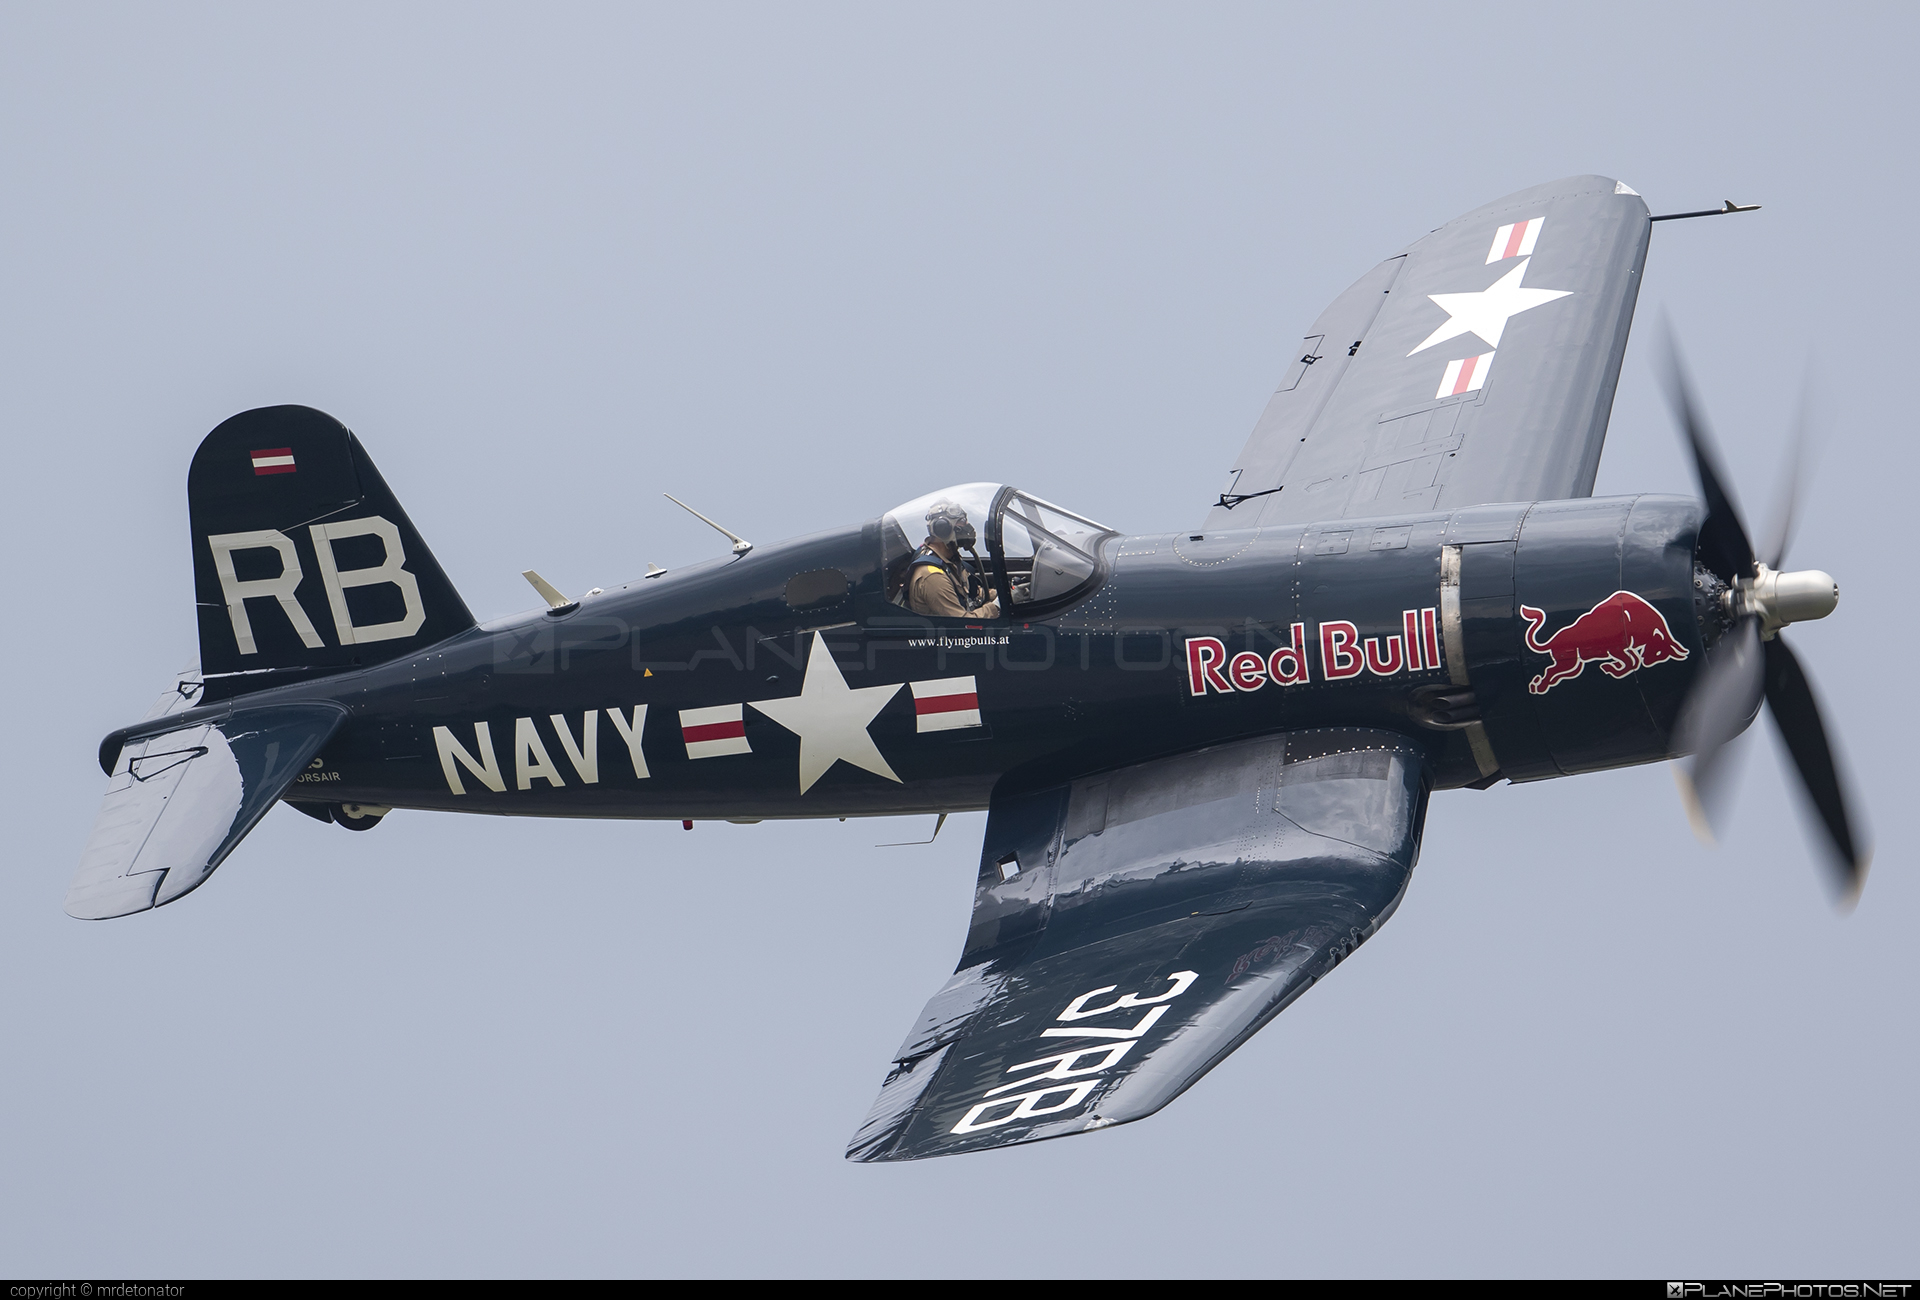 Vought F4U-4 Corsair - OE-EAS operated by The Flying Bulls #corsair #siaf2018 #theflyingbulls #vought